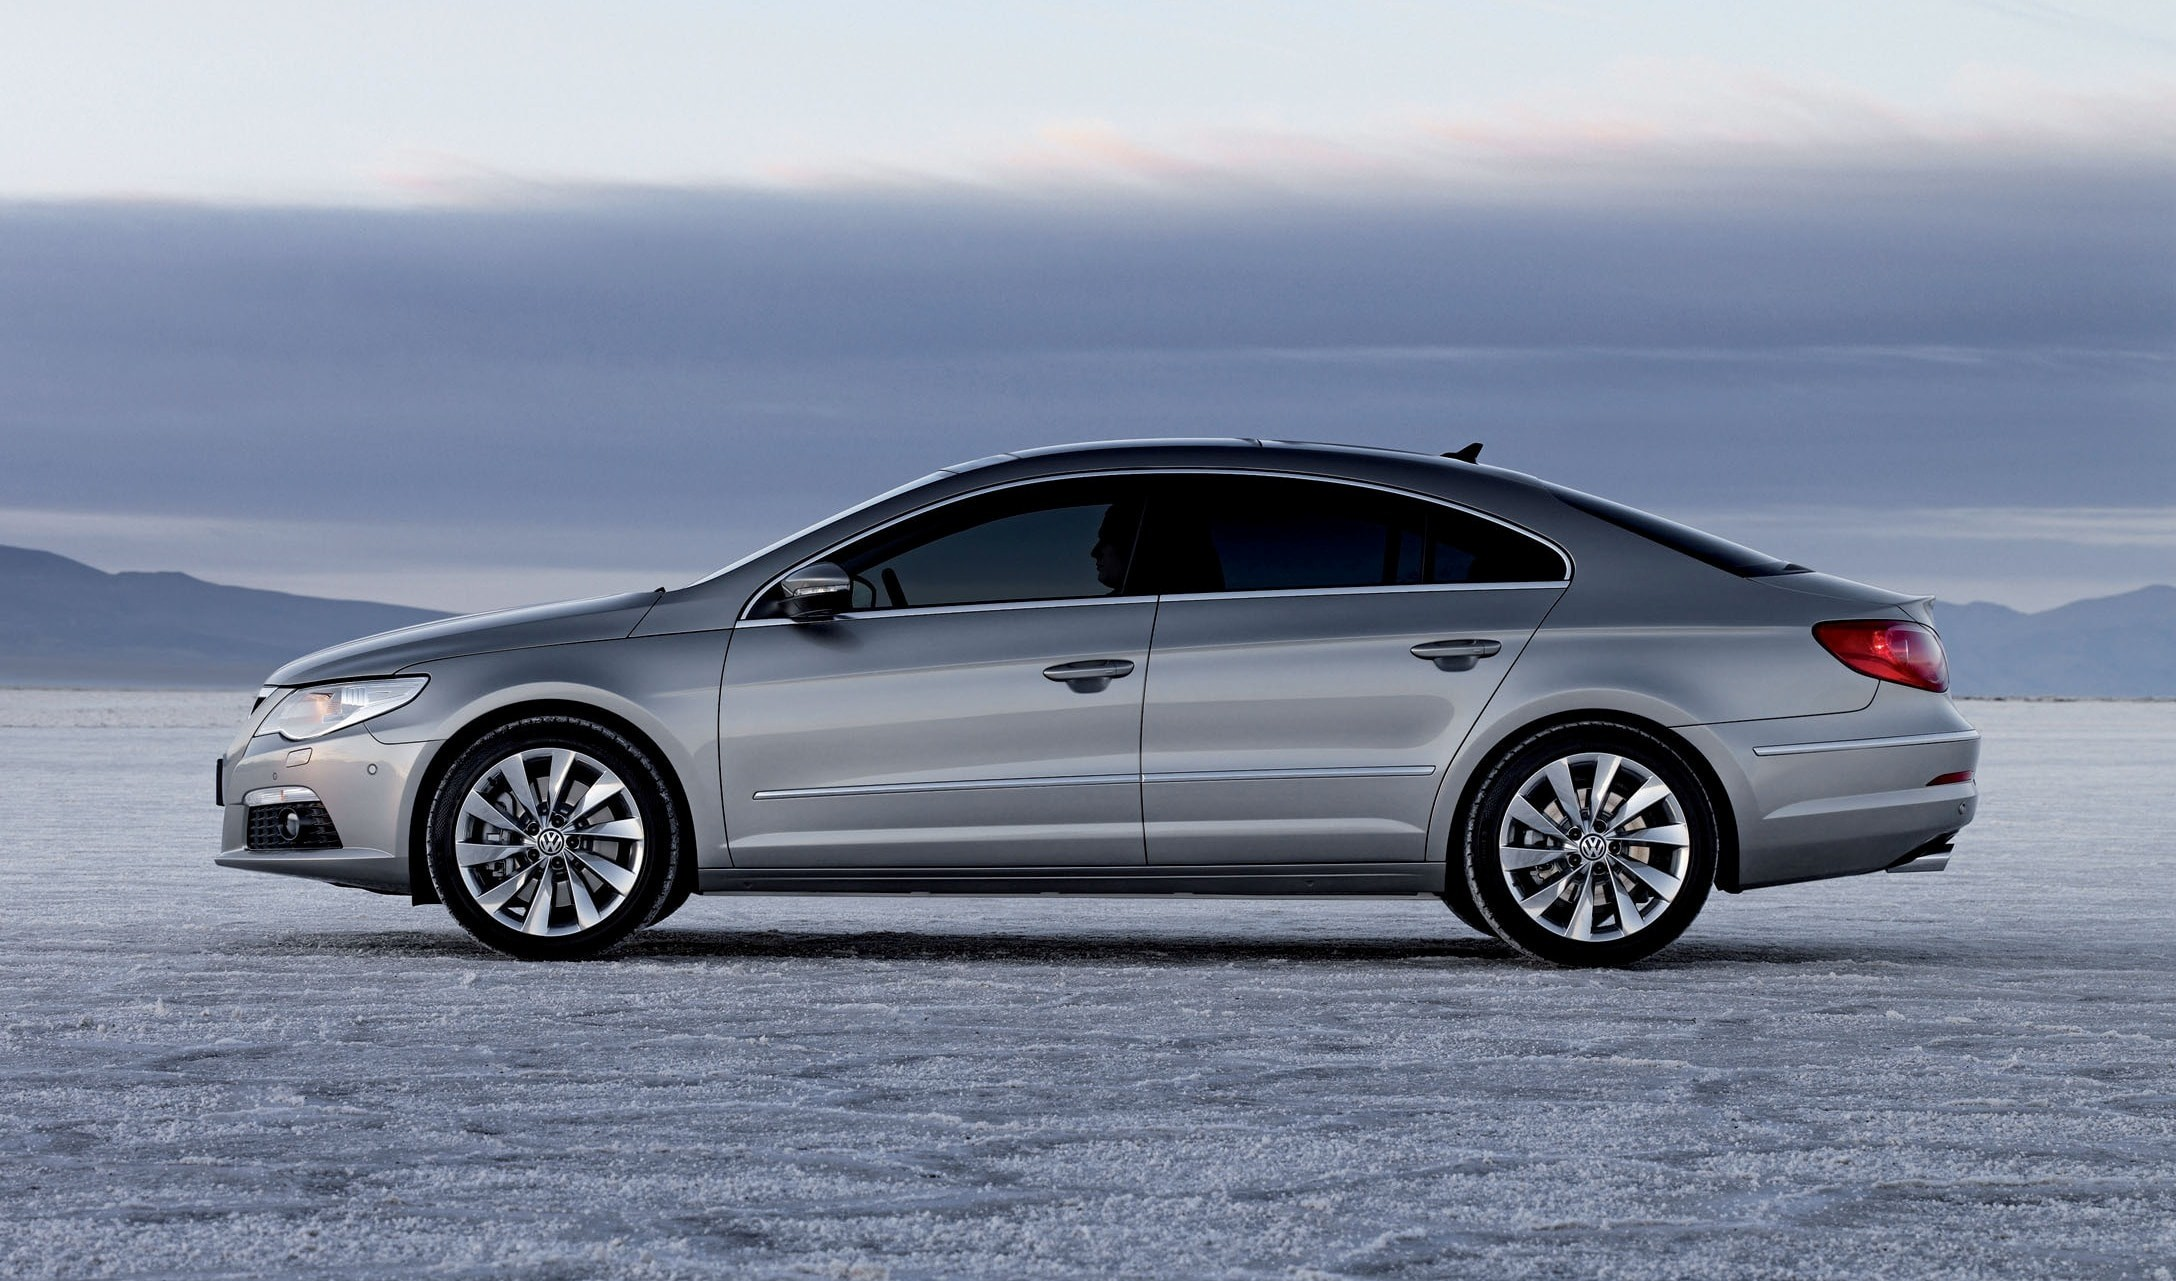 2009 Volkswagen CC HQ wallpapers 2009 Volkswagen CC Screensavers